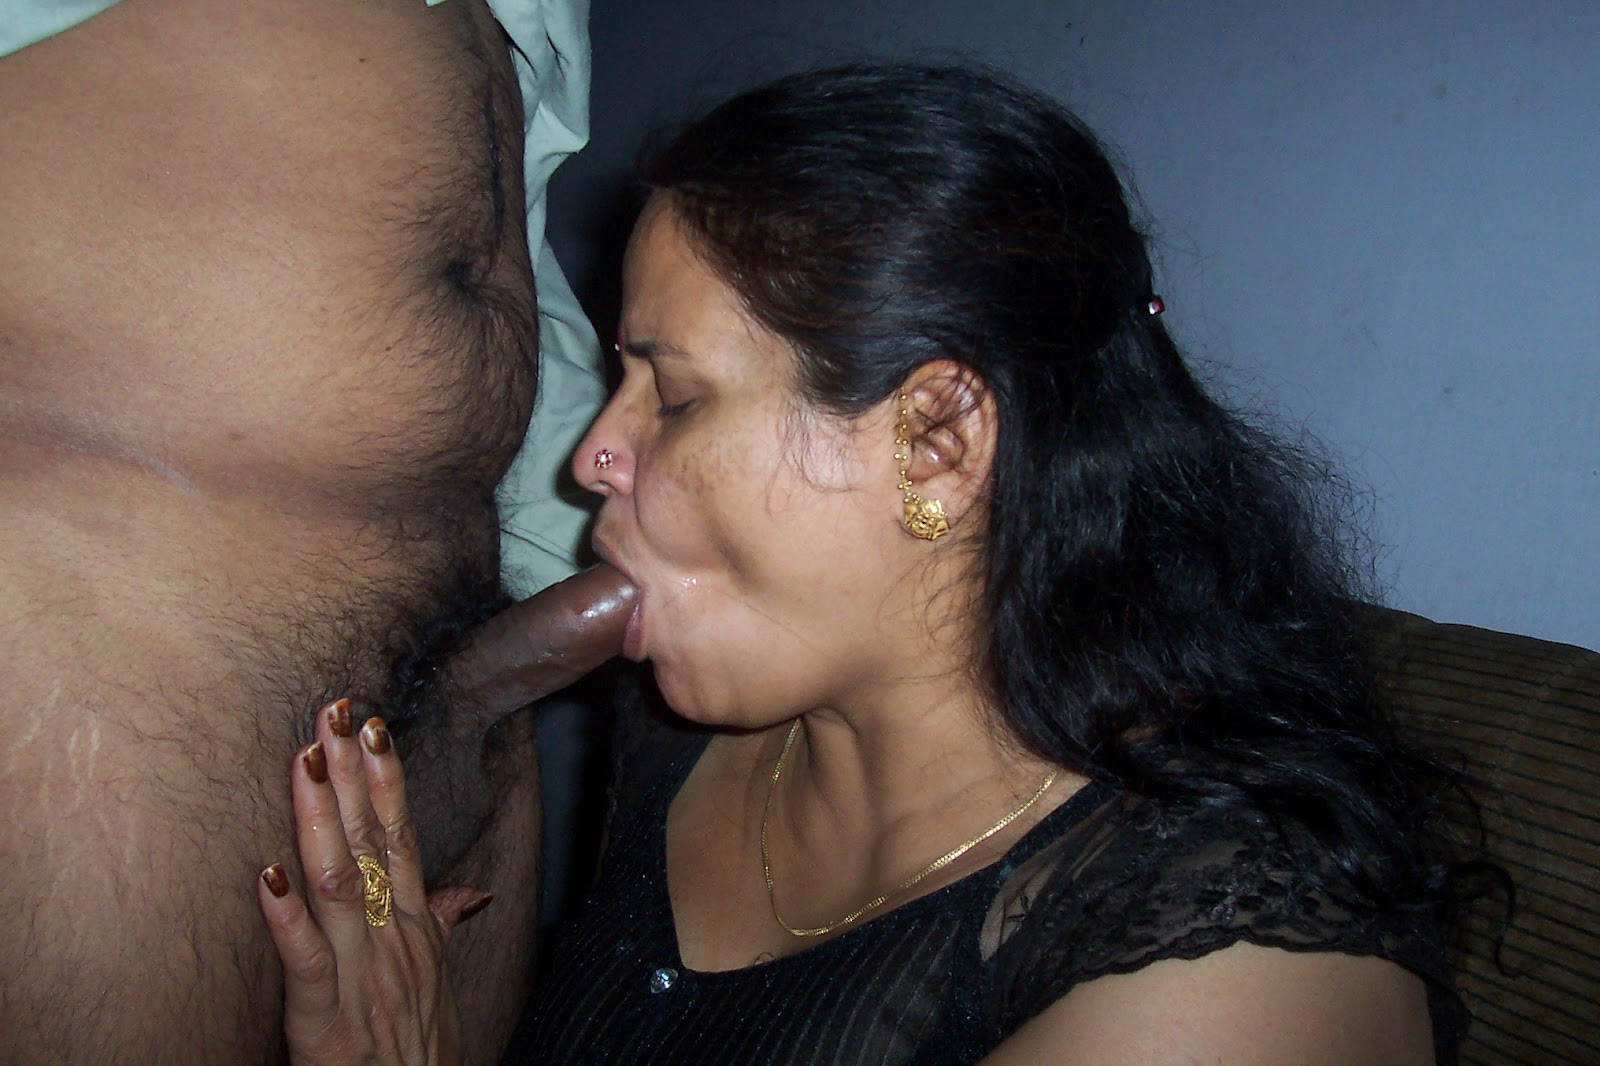 Hot xxx foreplay of south indian aunty caught on camera